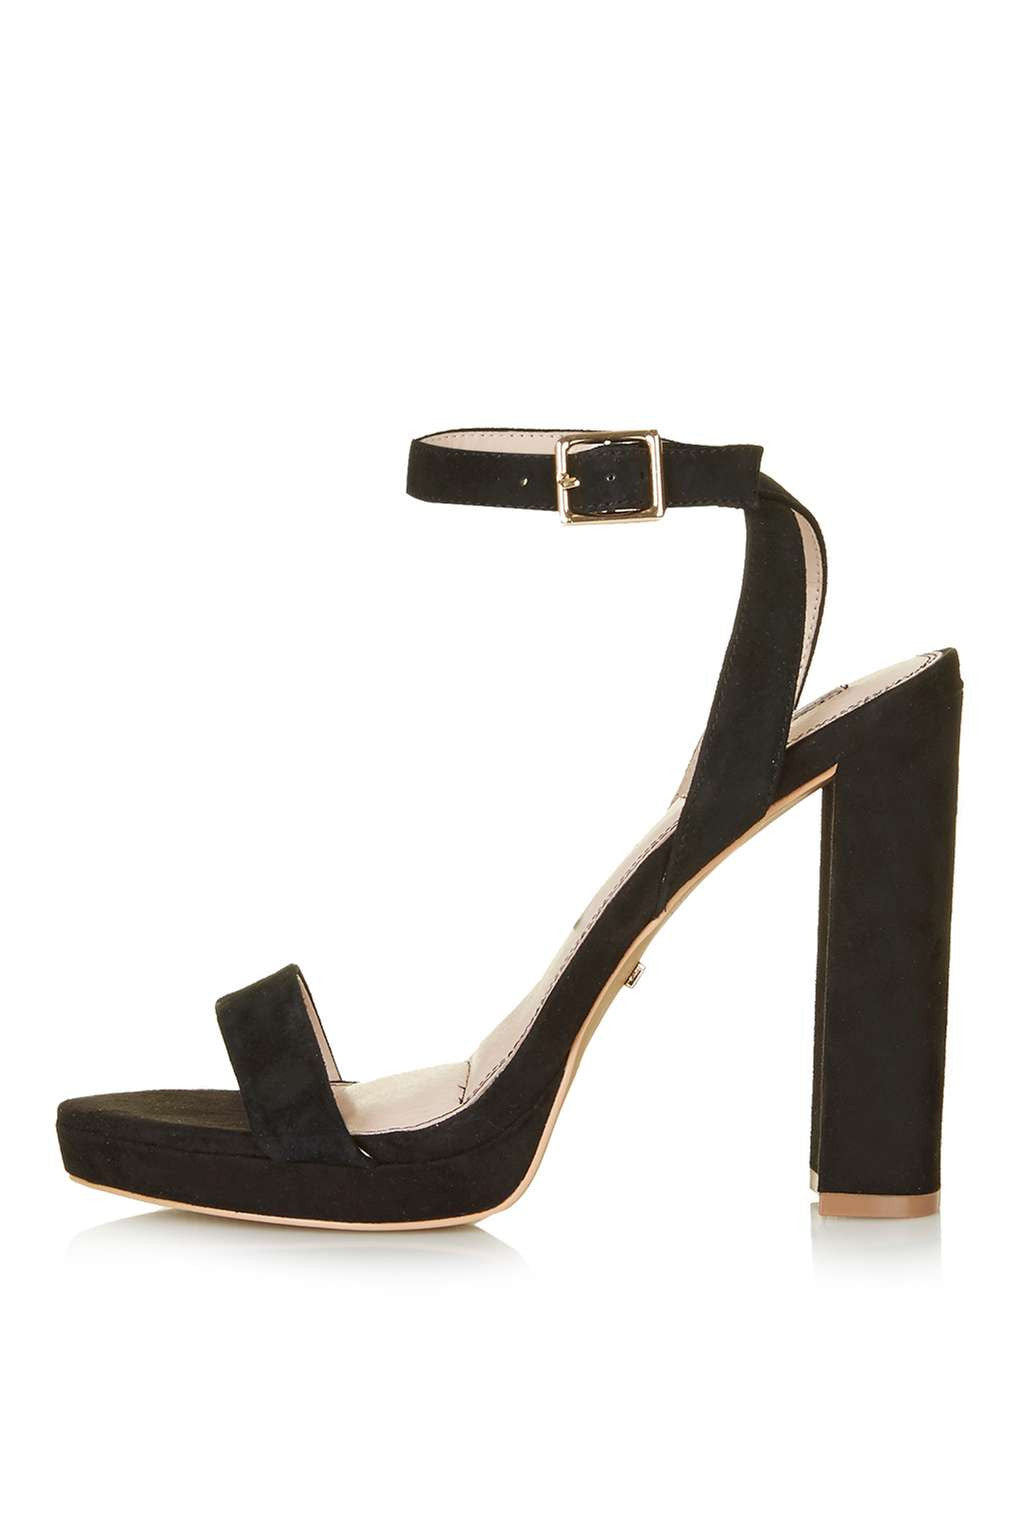 TopShop LUXURY Slim Platform Sandals